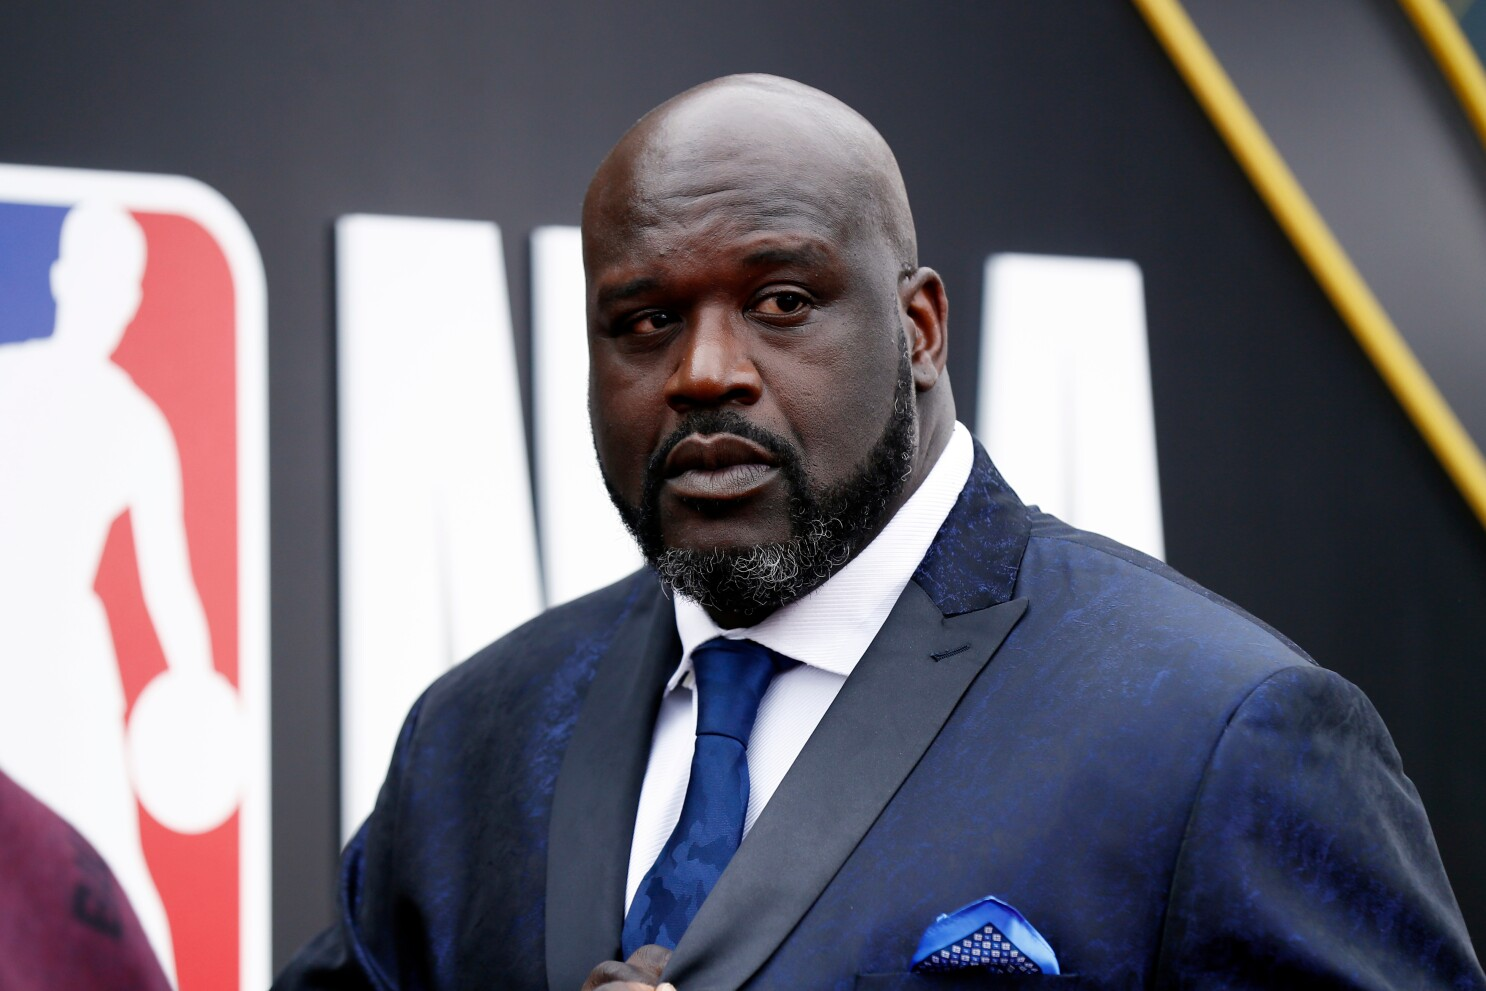 Shaquille O Neal won t have to kiss Steve Kerr s feet with cheese